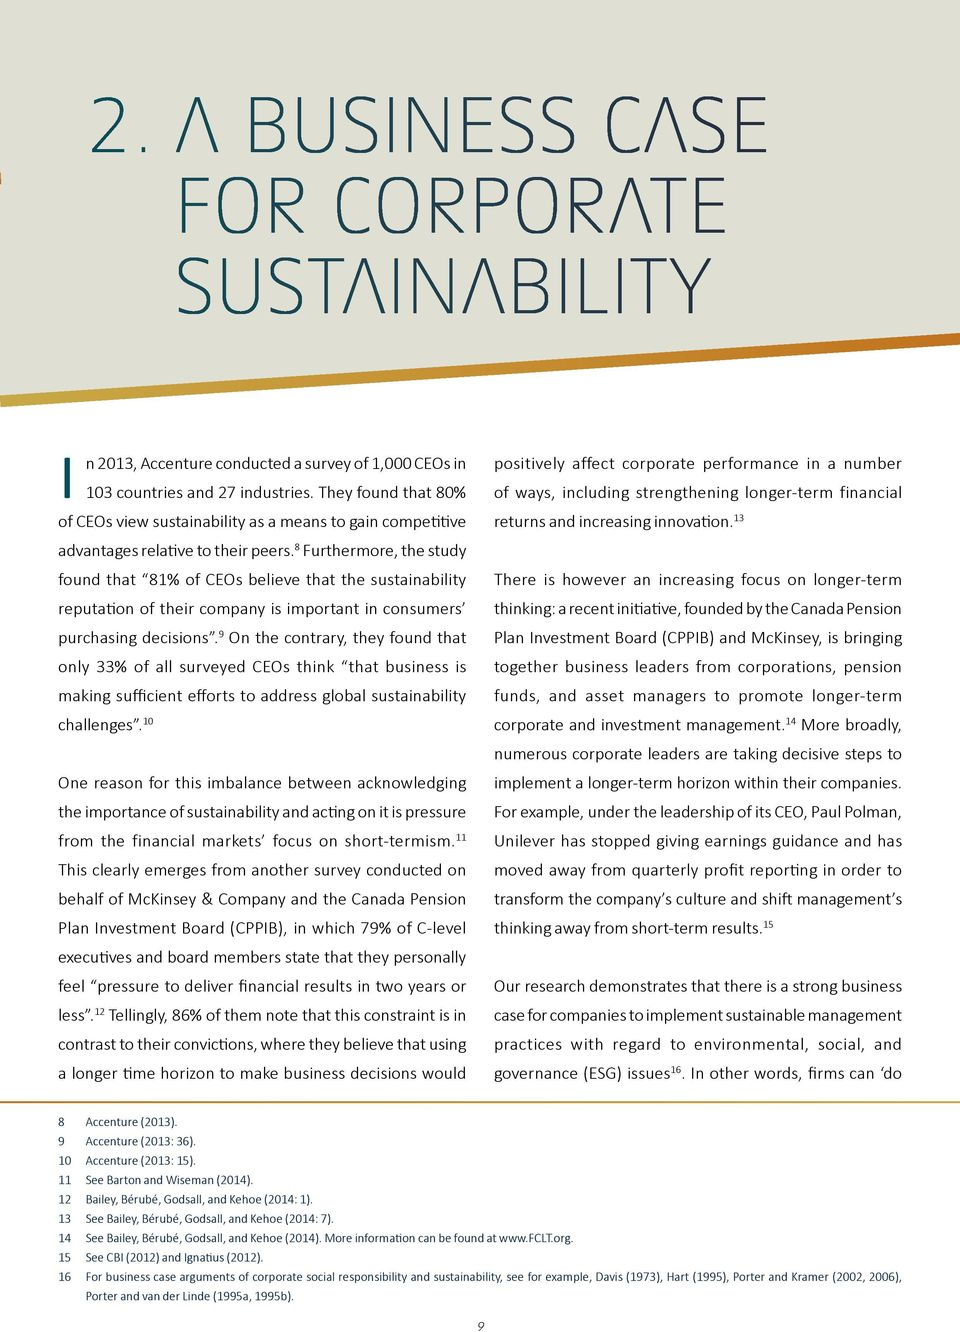 8 Furthermore, the study found that 81% of CEOs believe that the sustainability reputation of their company is important in consumers purchasing decisions.